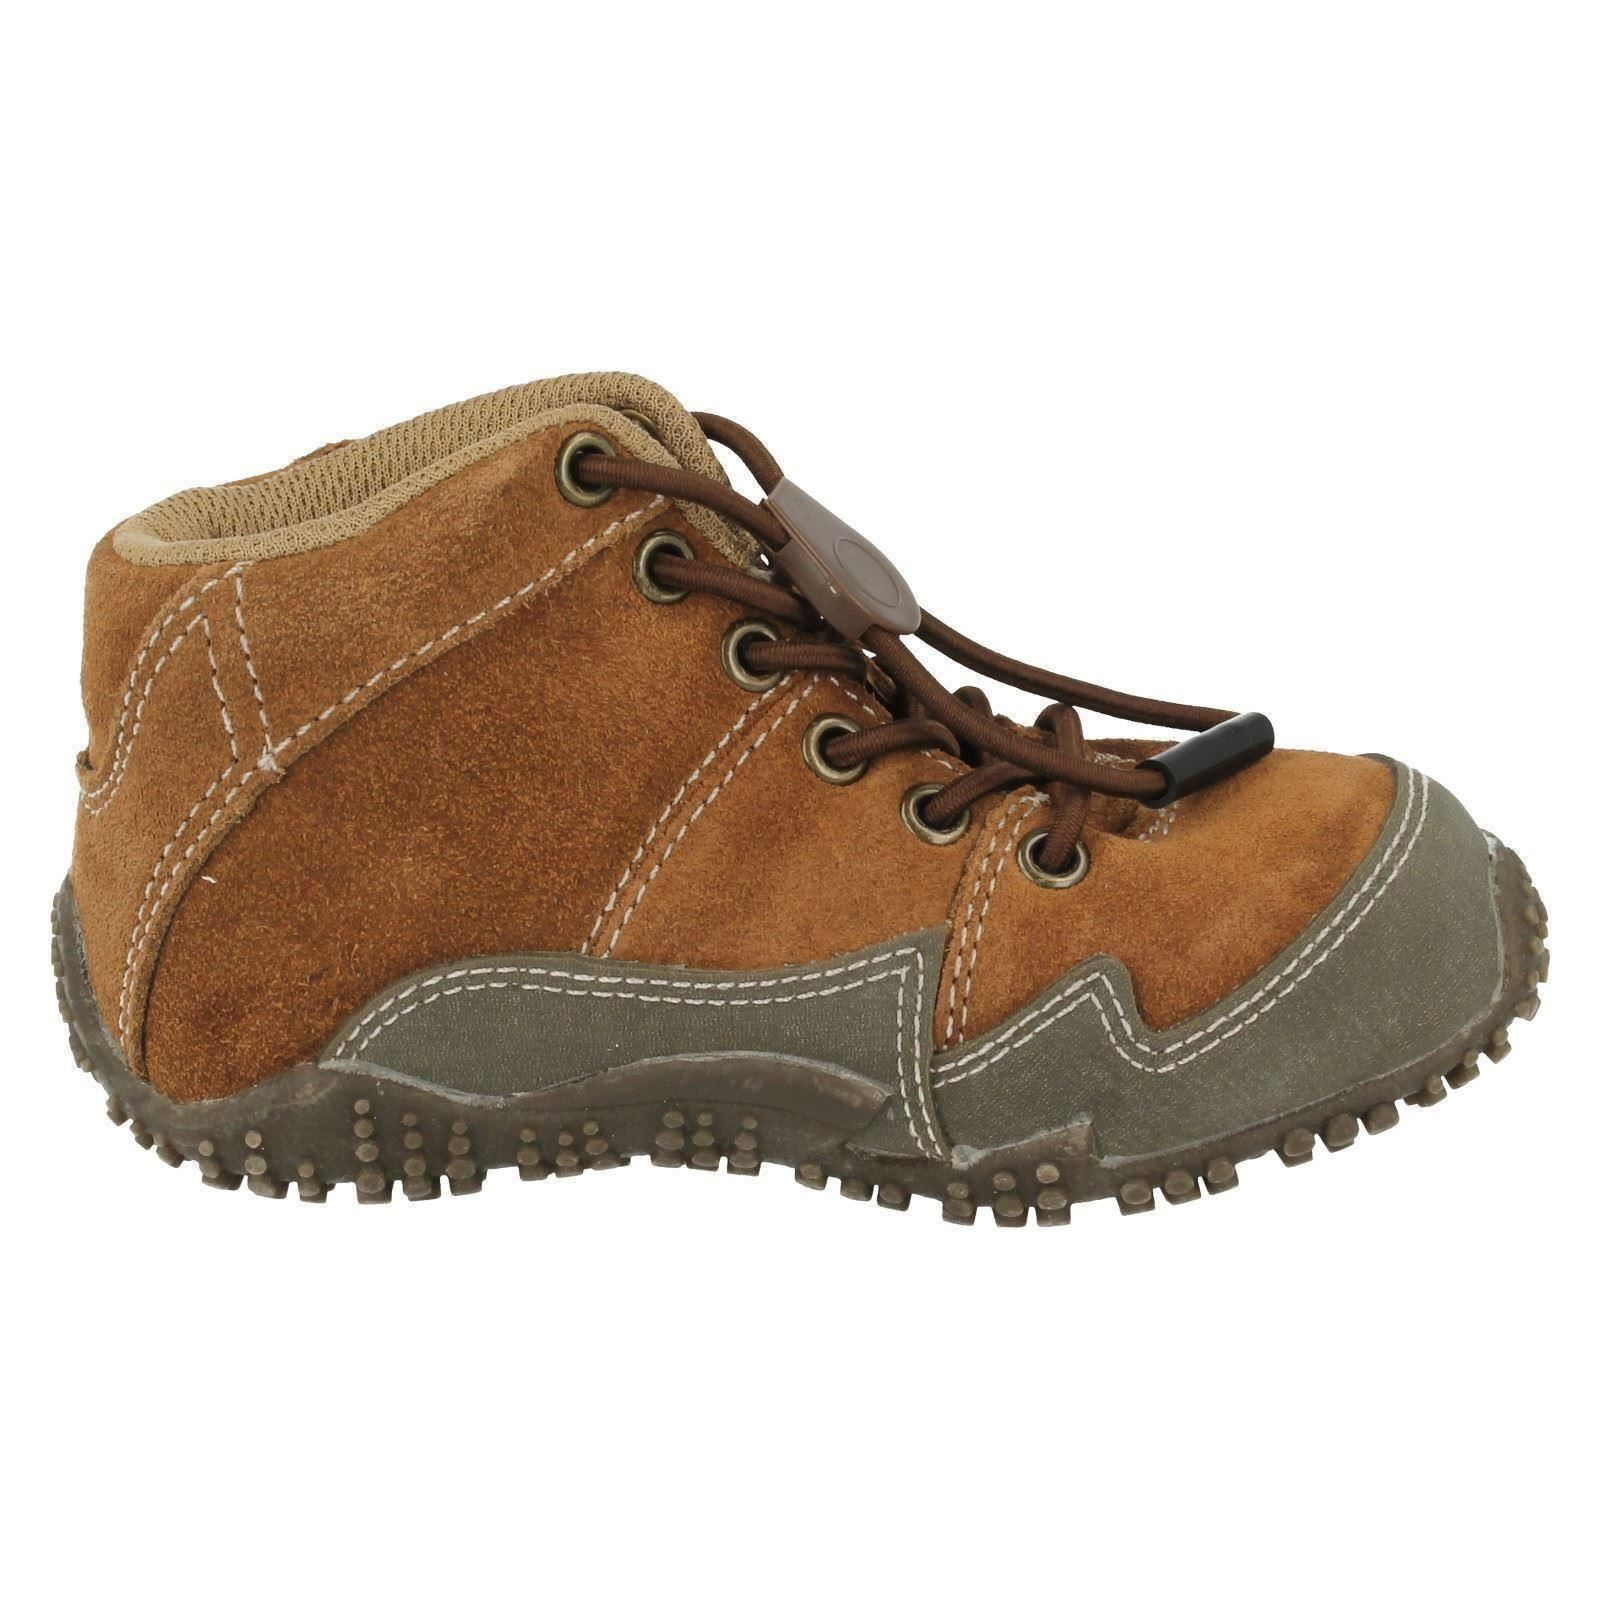 Boys Caterpillar 'Andre' Boots The Style ~ K